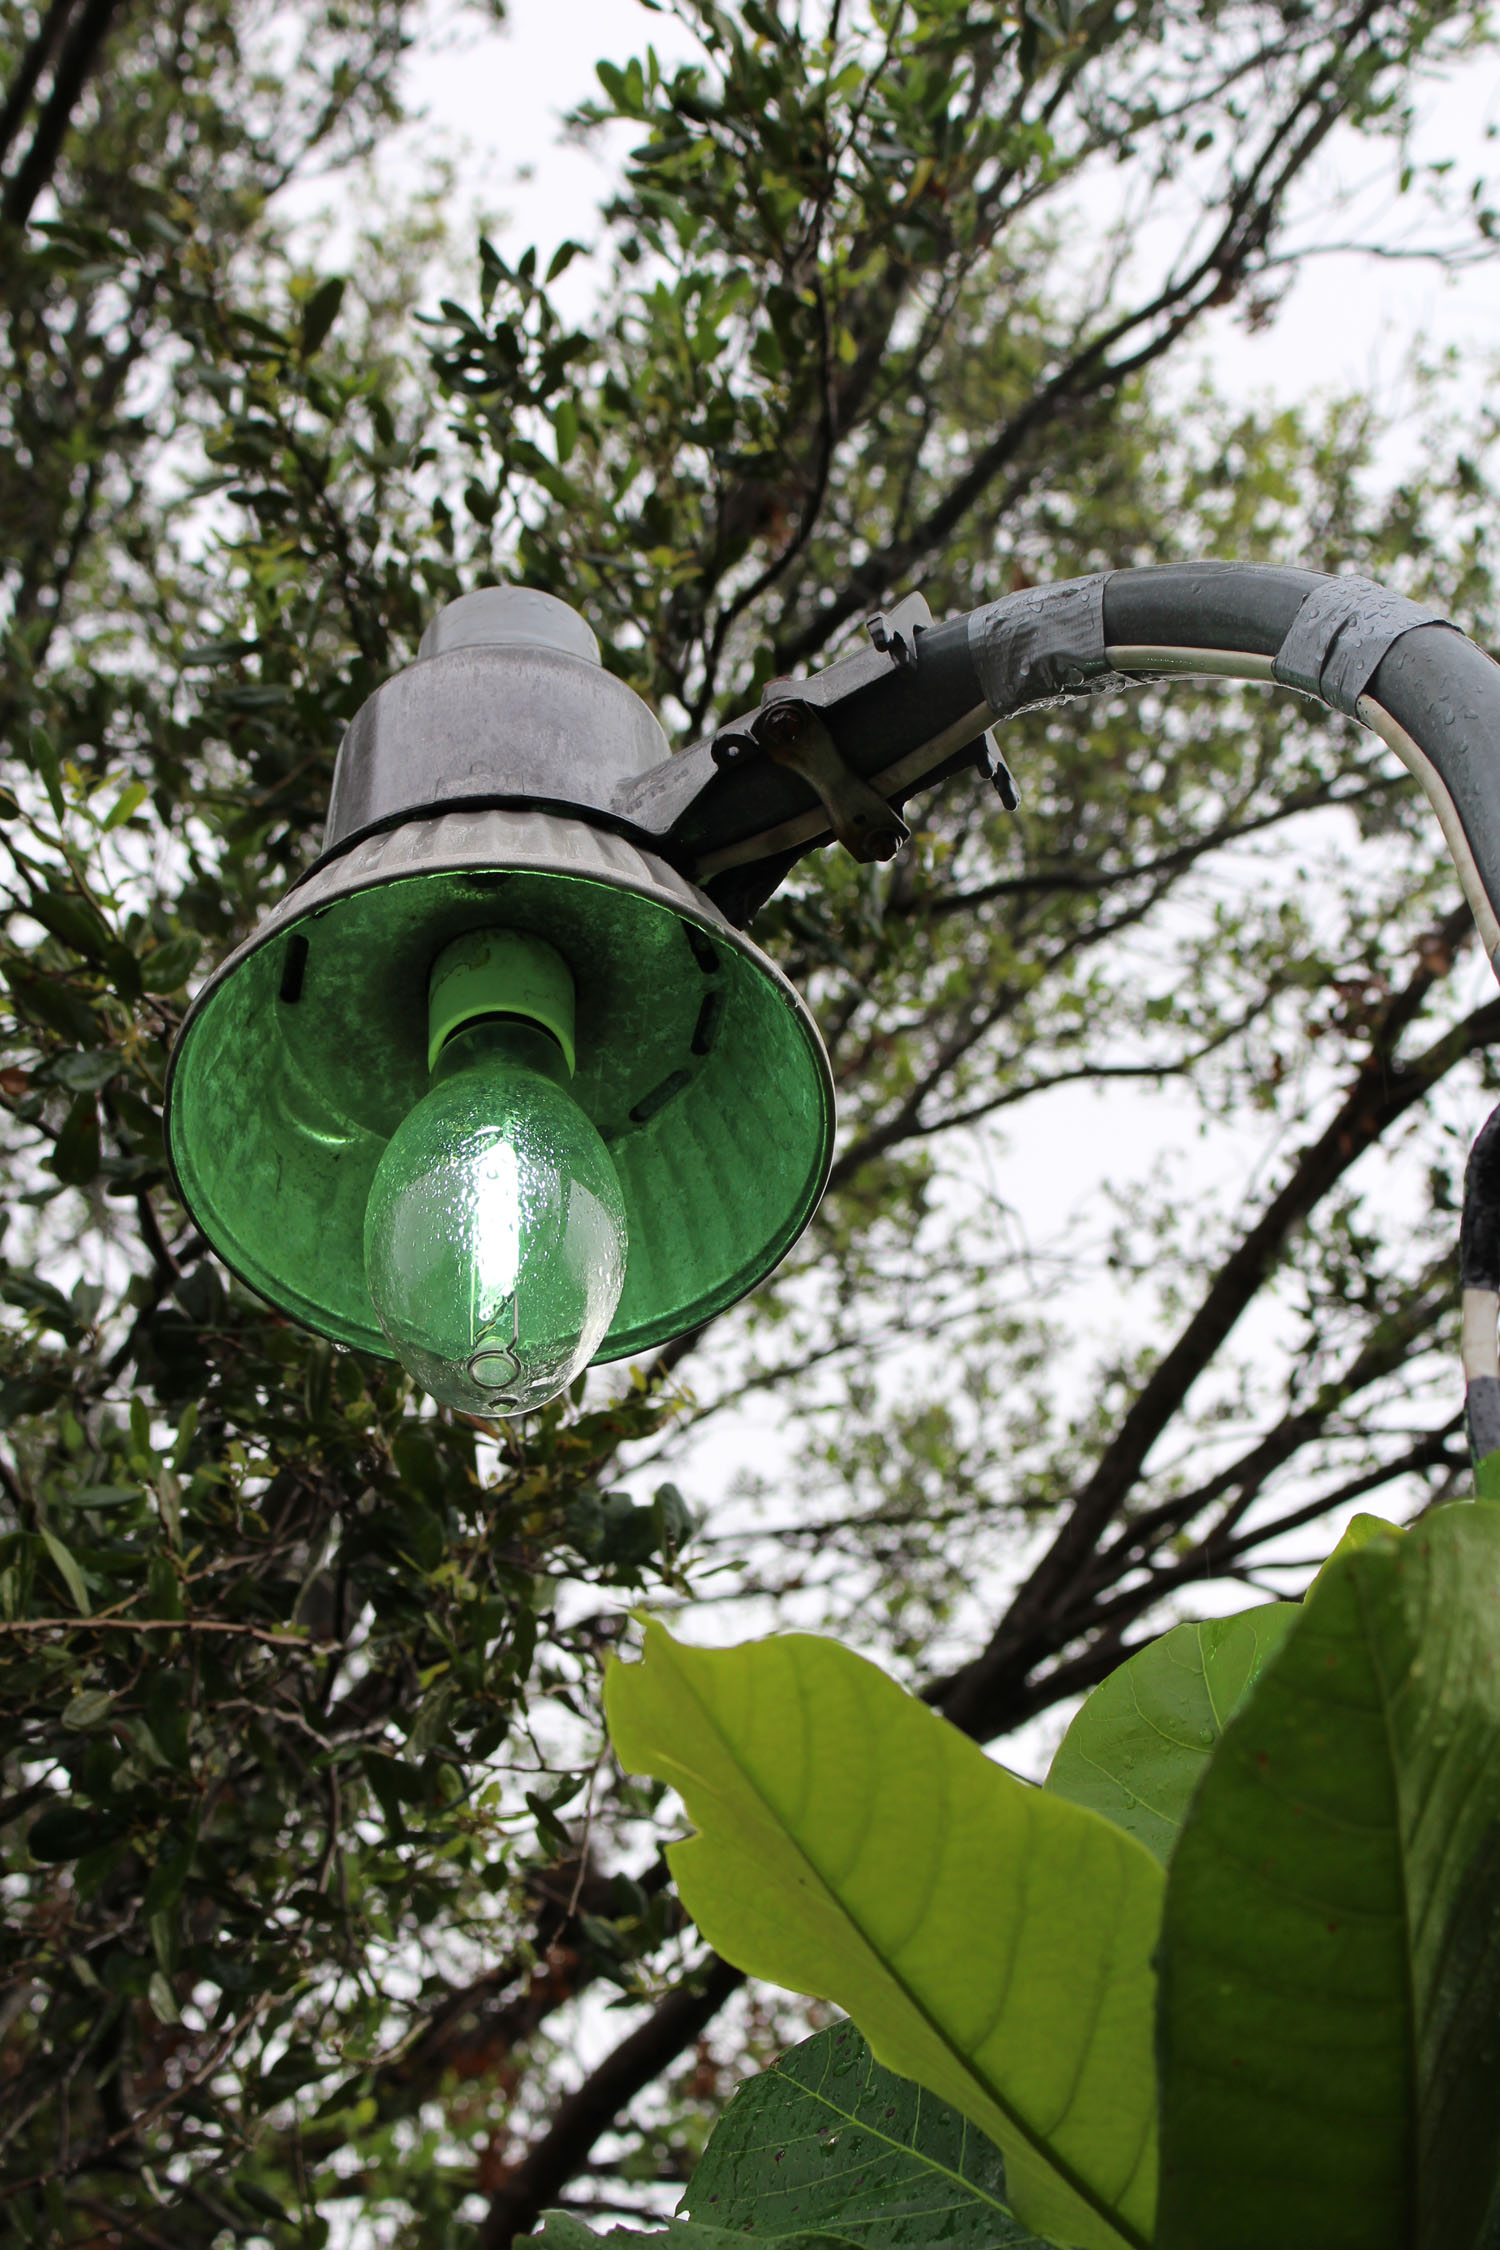 John DeFaro LIghts Back Off project lamp post top with bulb turning on depicting green glow 2017